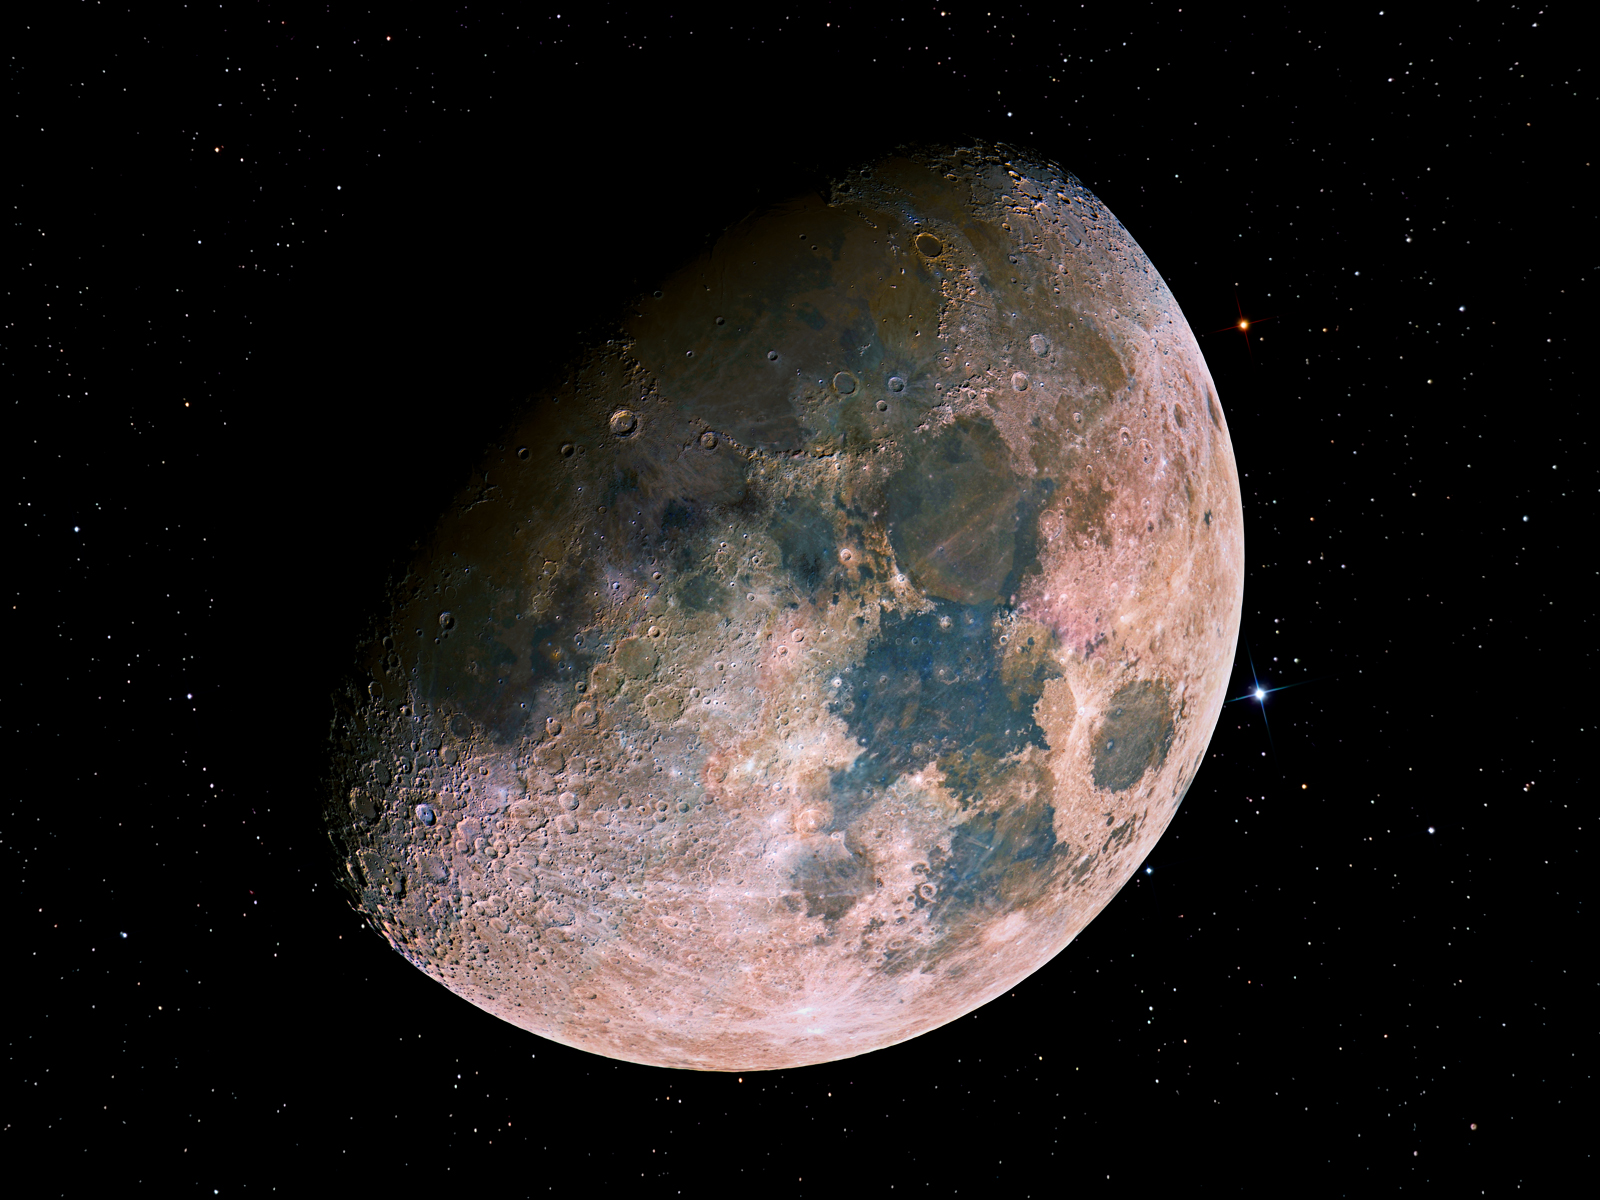 hight resolution of hdr image of the moon